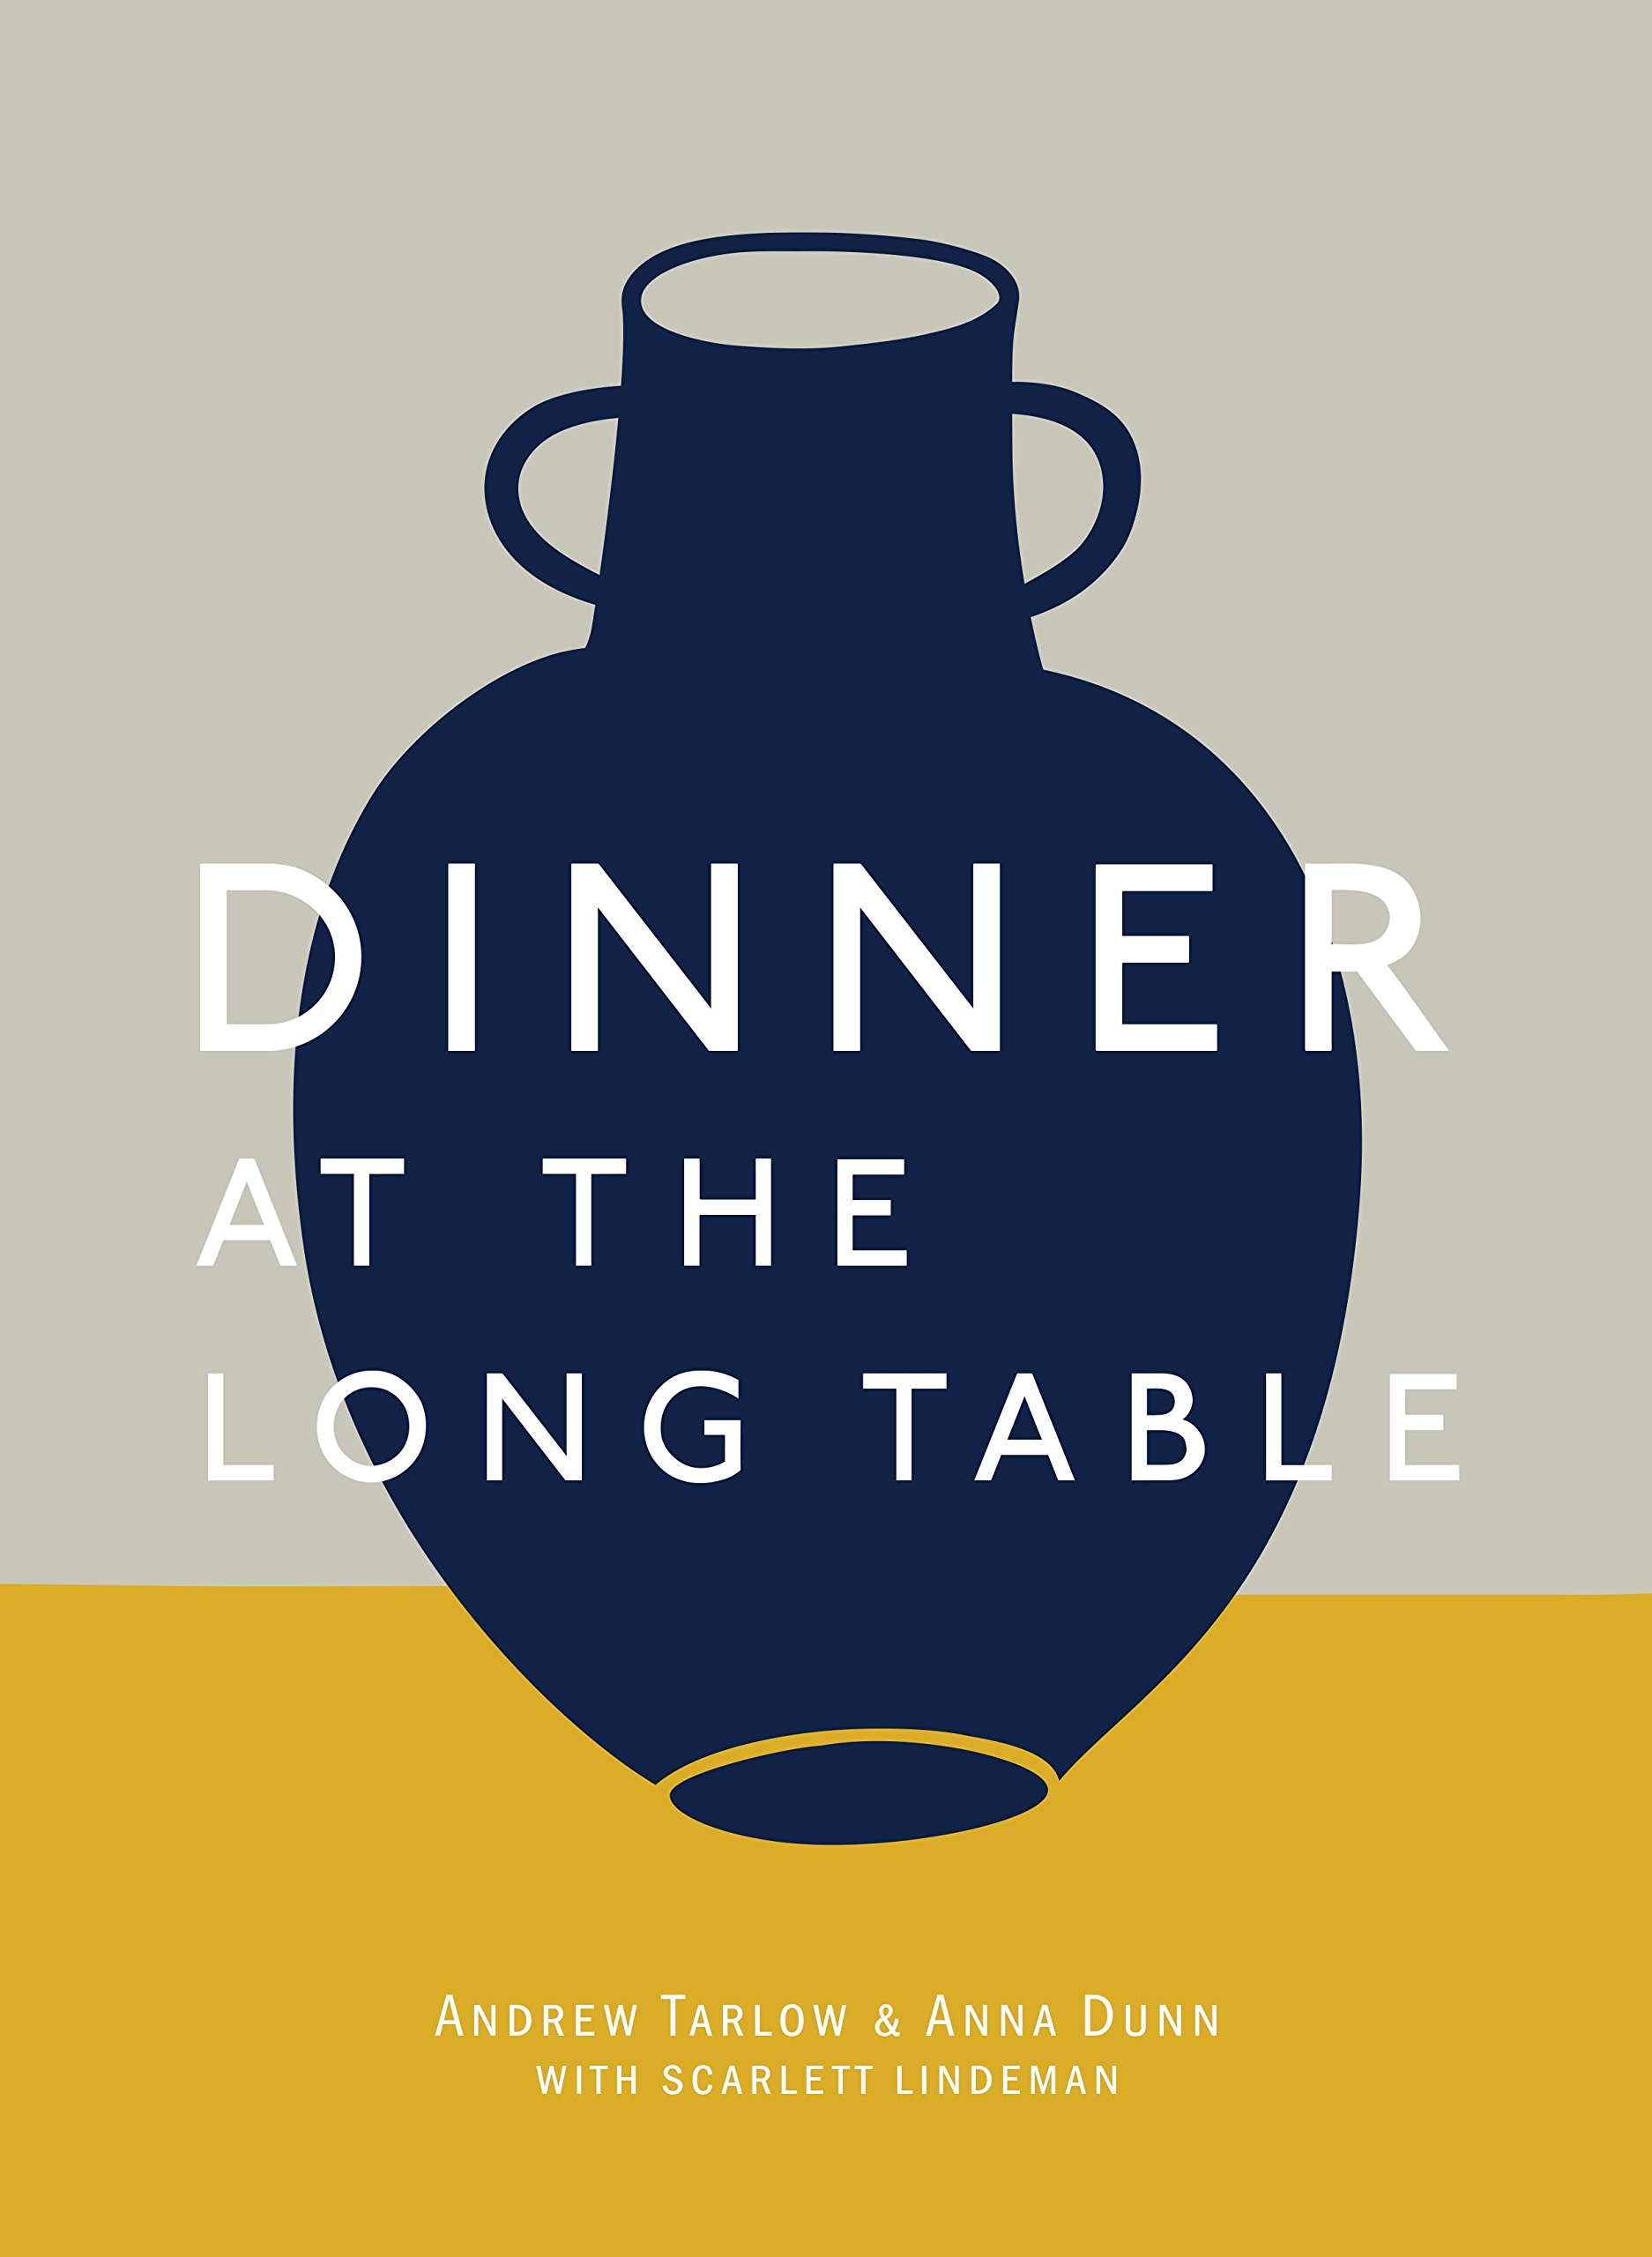 Dinner Long Table Andrew Tarlow product image